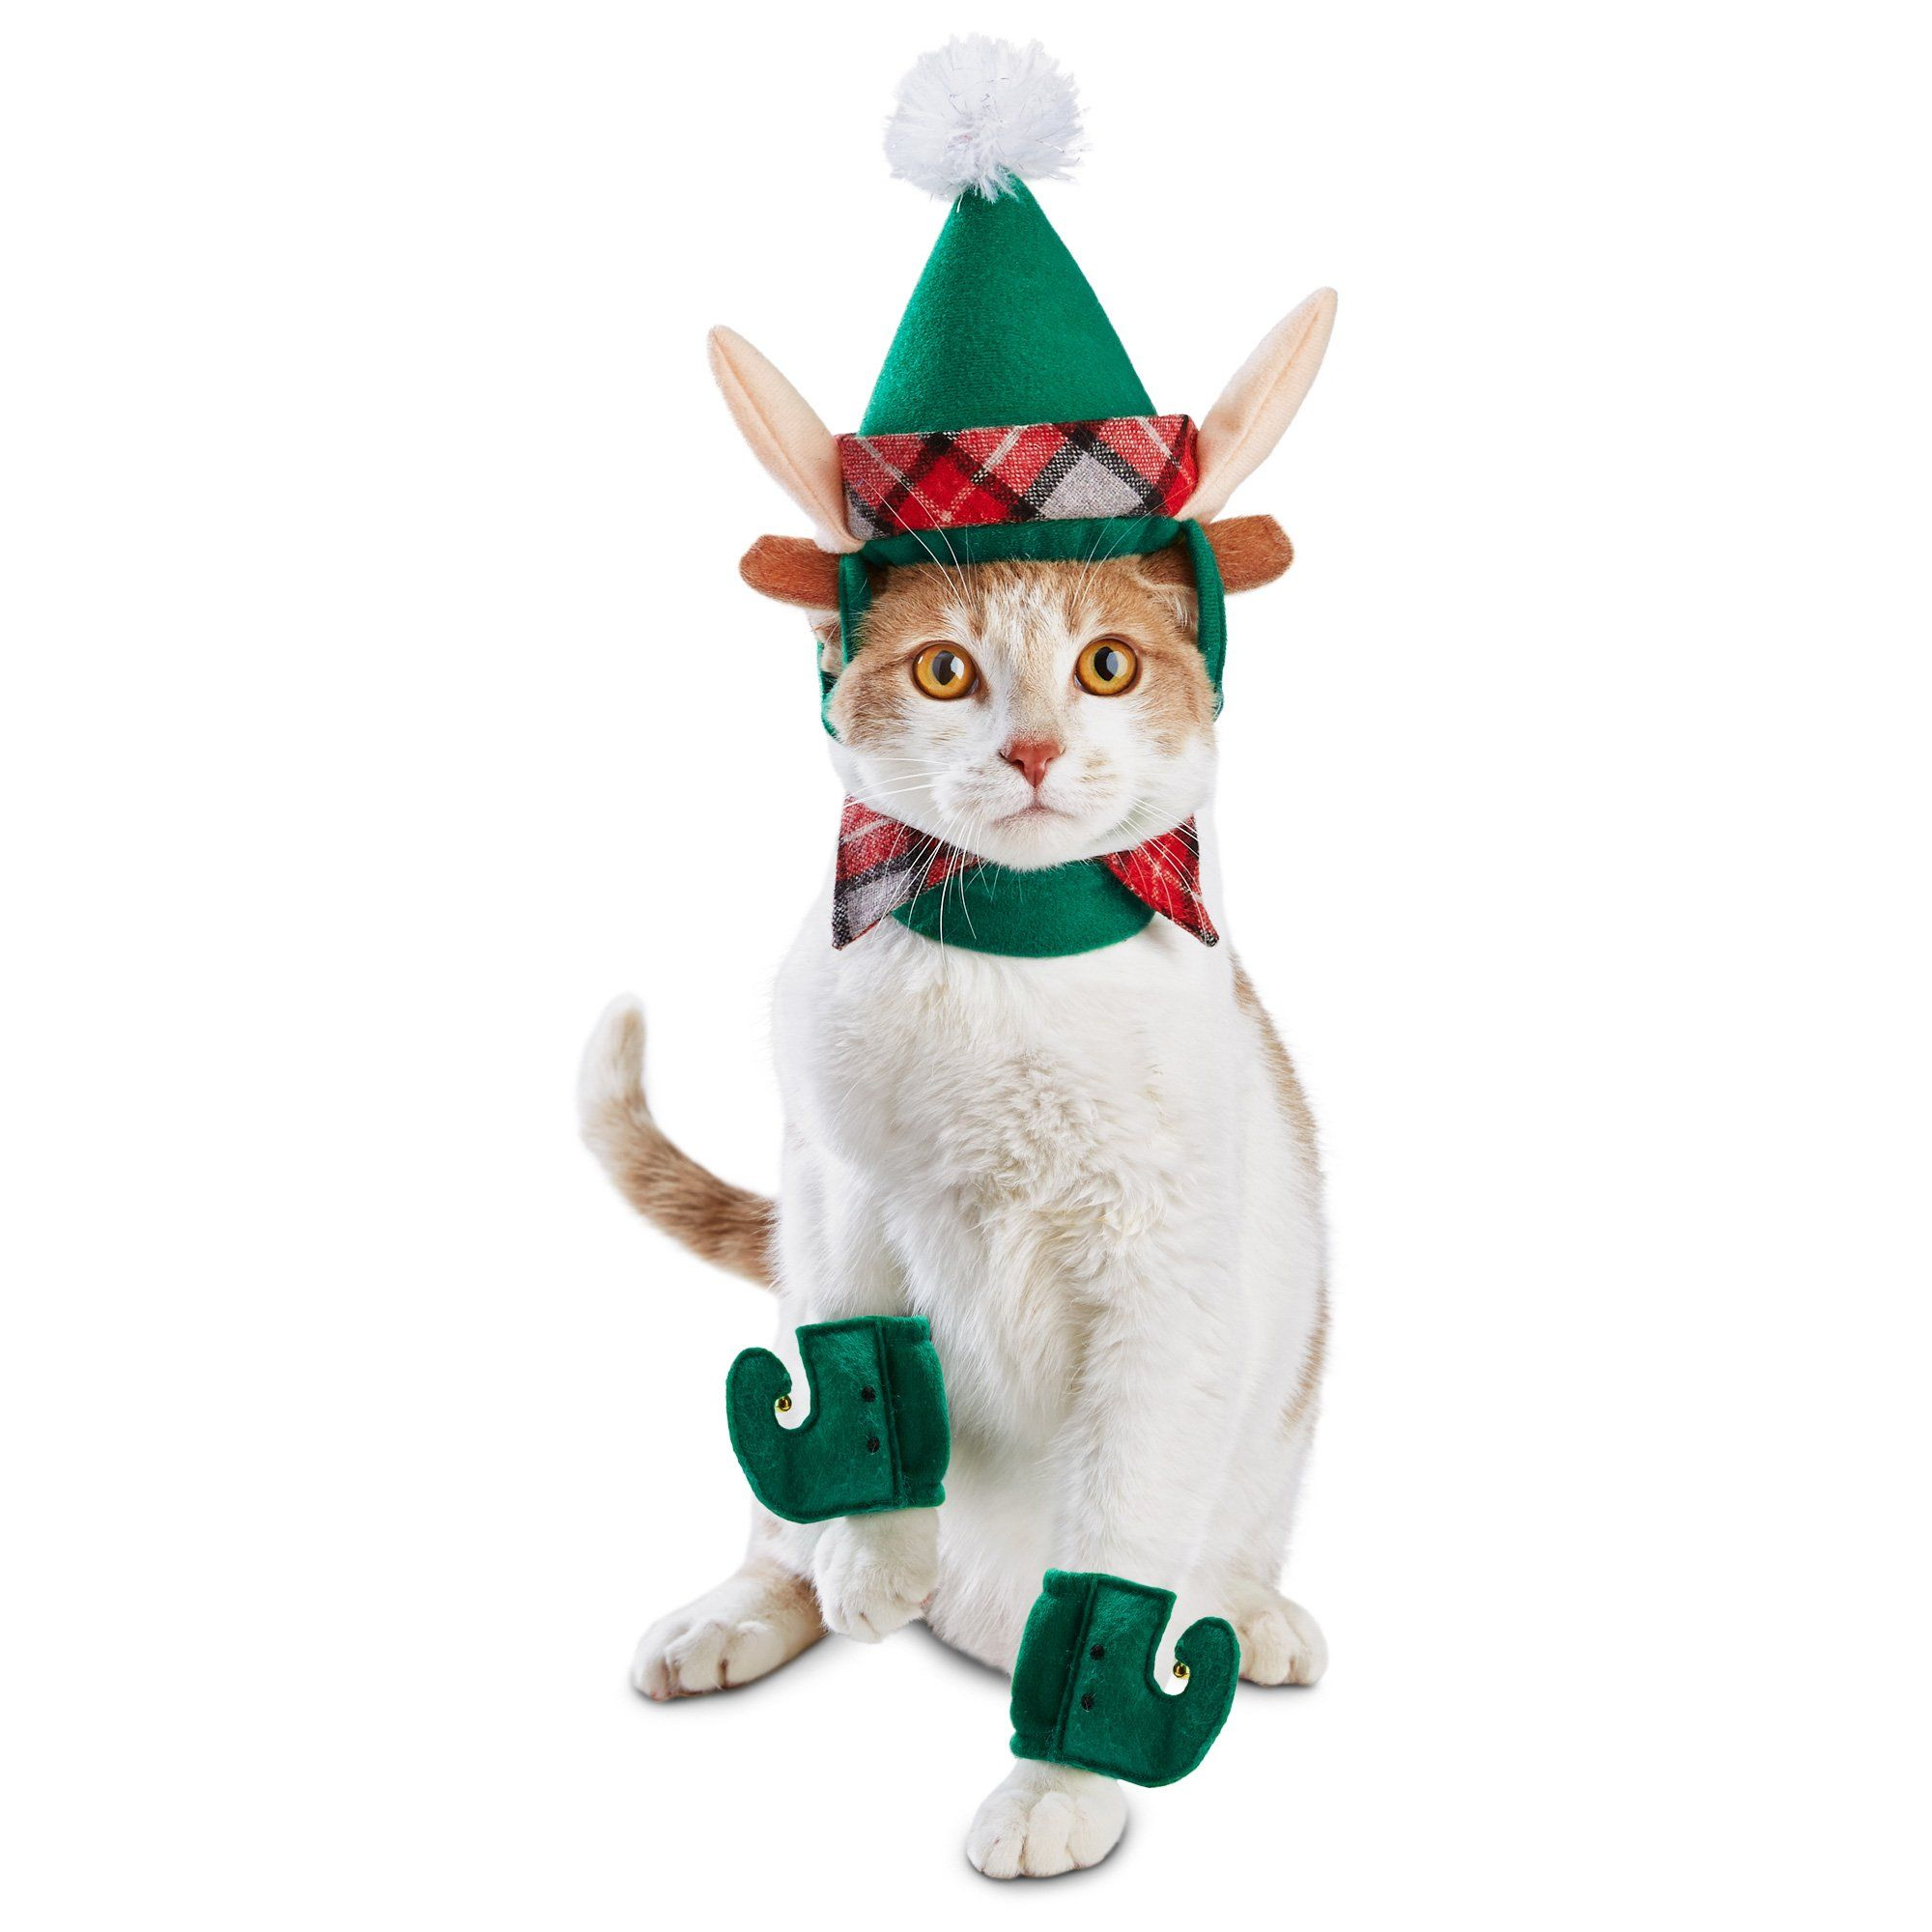 Petco Holiday Elf Cat Costume - Petco Holiday Elf Cat Costume One Size Fits Most  sc 1 st  Pinterest & Petco Holiday Elf Cat Costume - Petco Holiday Elf Cat Costume One ...